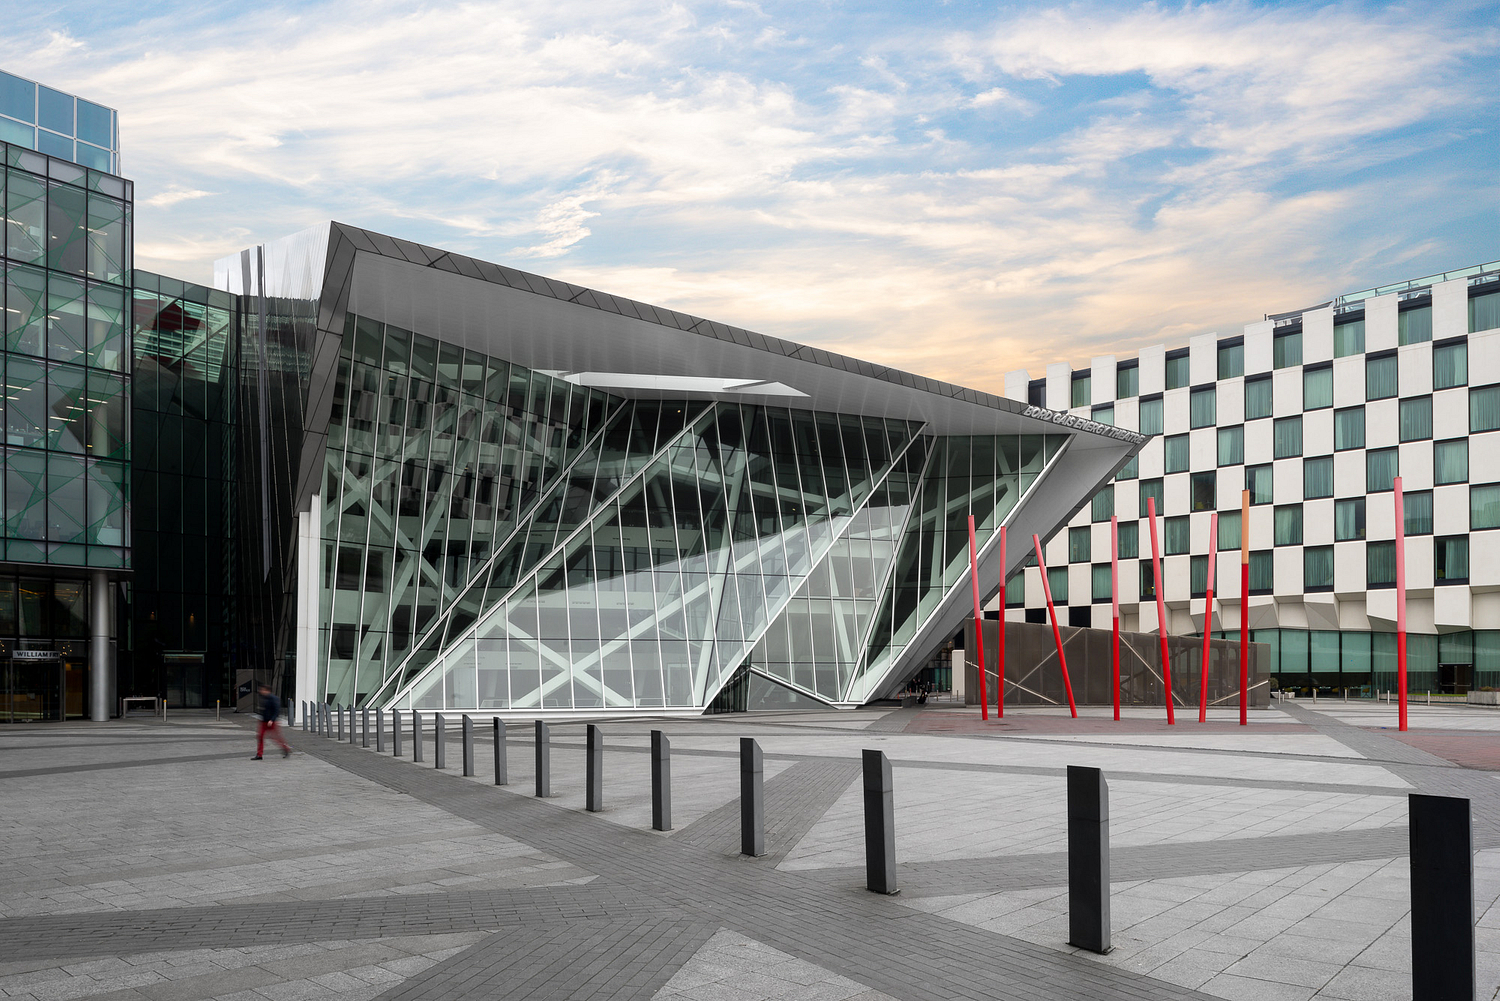 The Bord Gáis Energy Theatre designed by McCauley Daye O'Connell Architects in Dublin, Ireland